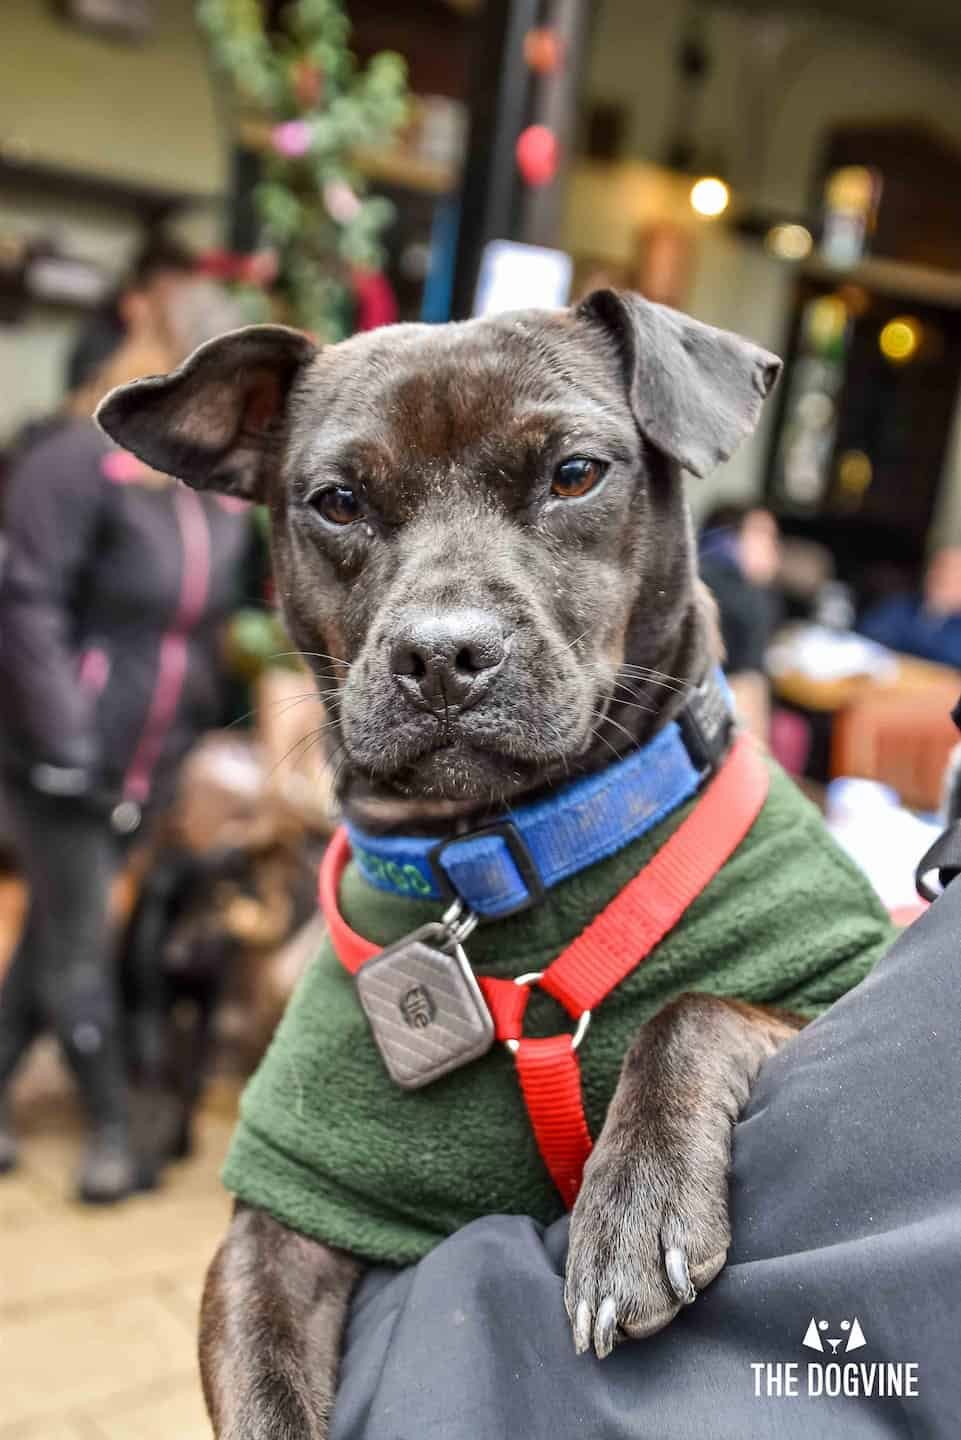 Dog Events In London This Month November 2018 - Dogs getting ready for Christmas